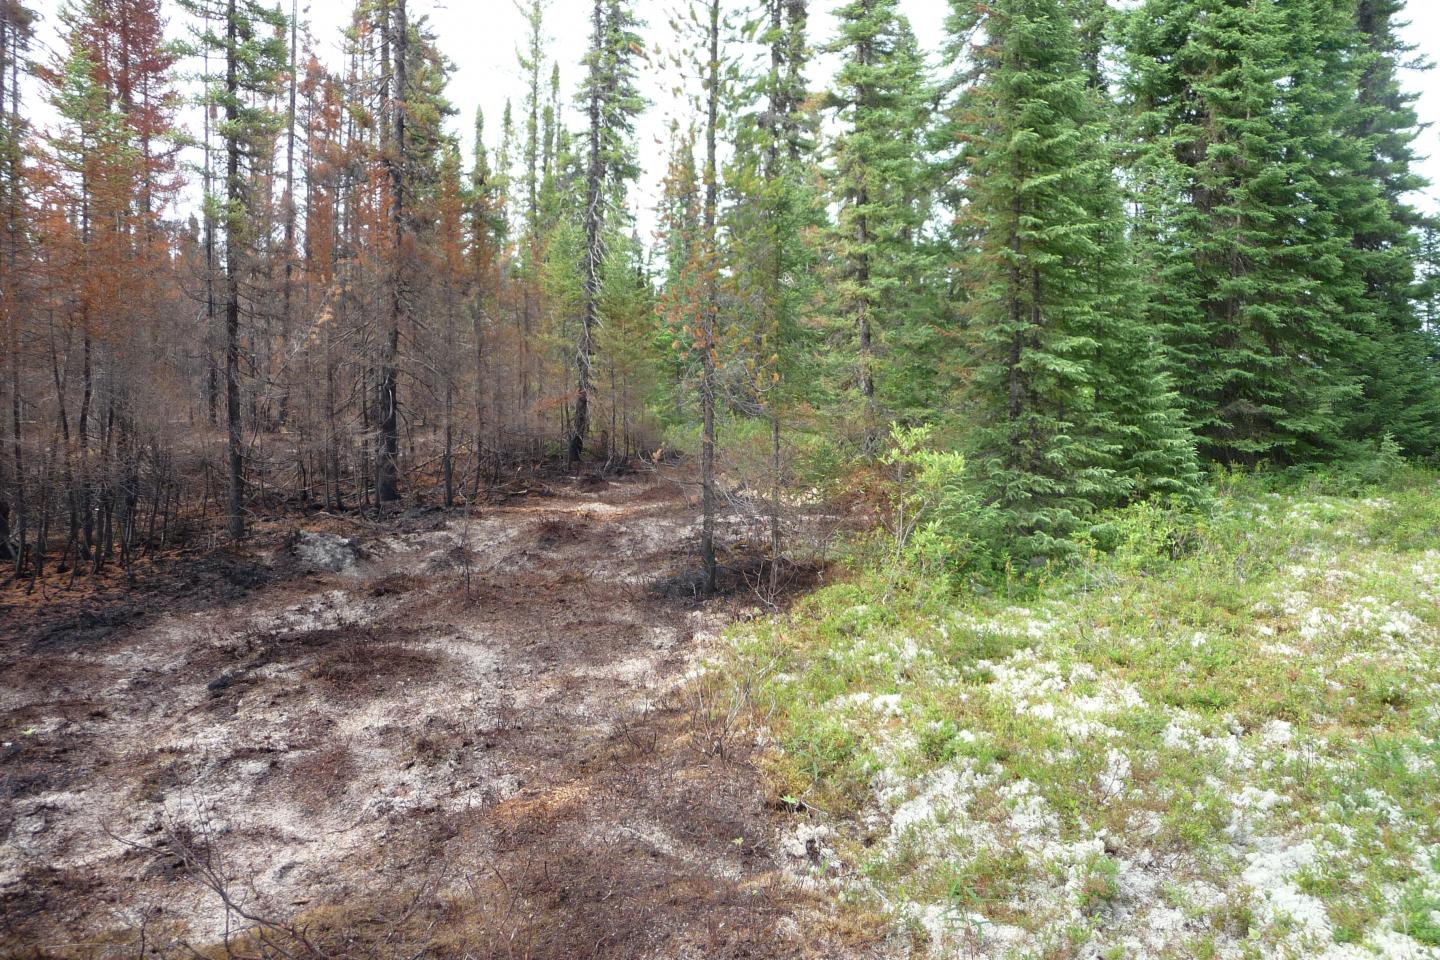 Boundary of a Recent Low-Intensity Stand-Replacing Fire